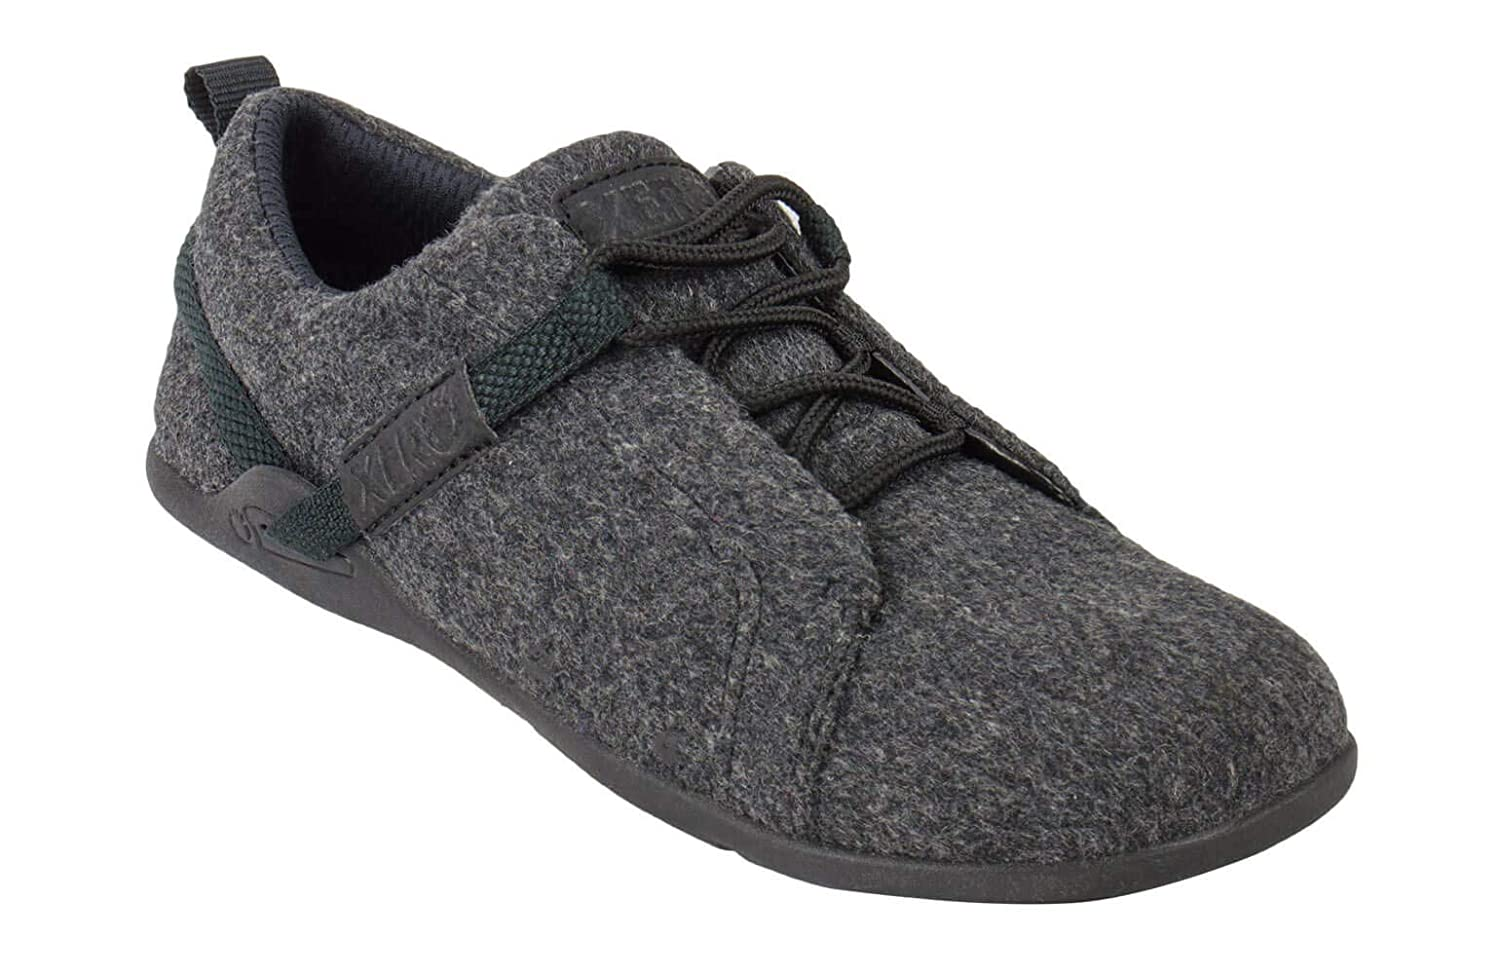 Charcoal Xero shoes Pacifica - Women's Minimalist Wool shoes - Barefoot Inspired, Zero Drop Sole - Charcoal